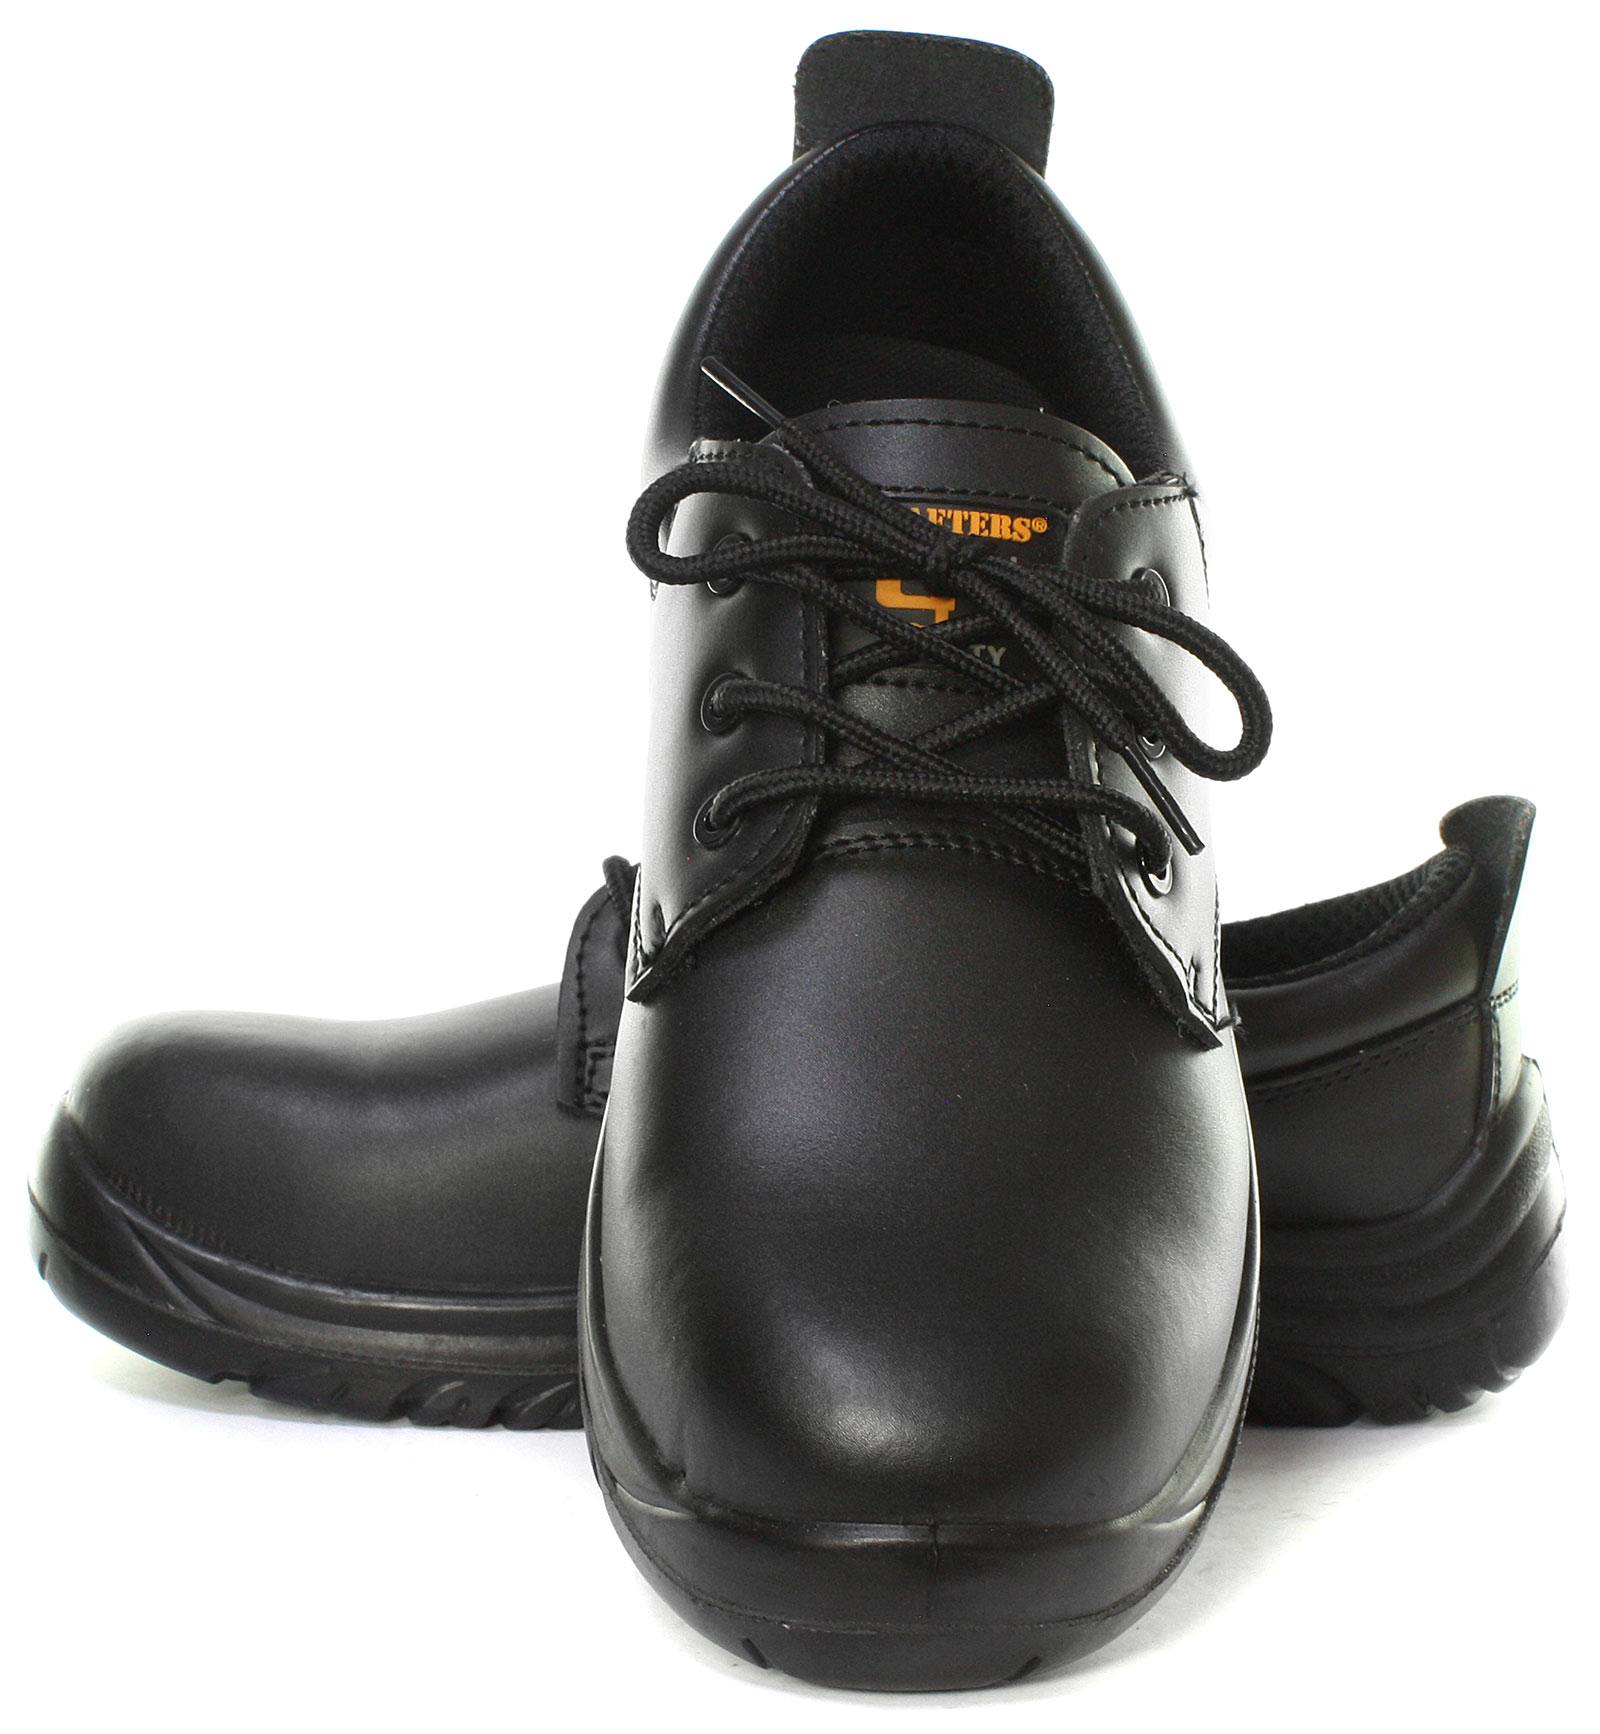 Grafters-M456A-Mens-Fully-Composite-Non-Metal-Safety-Shoes-ALL-SIZES miniature 2